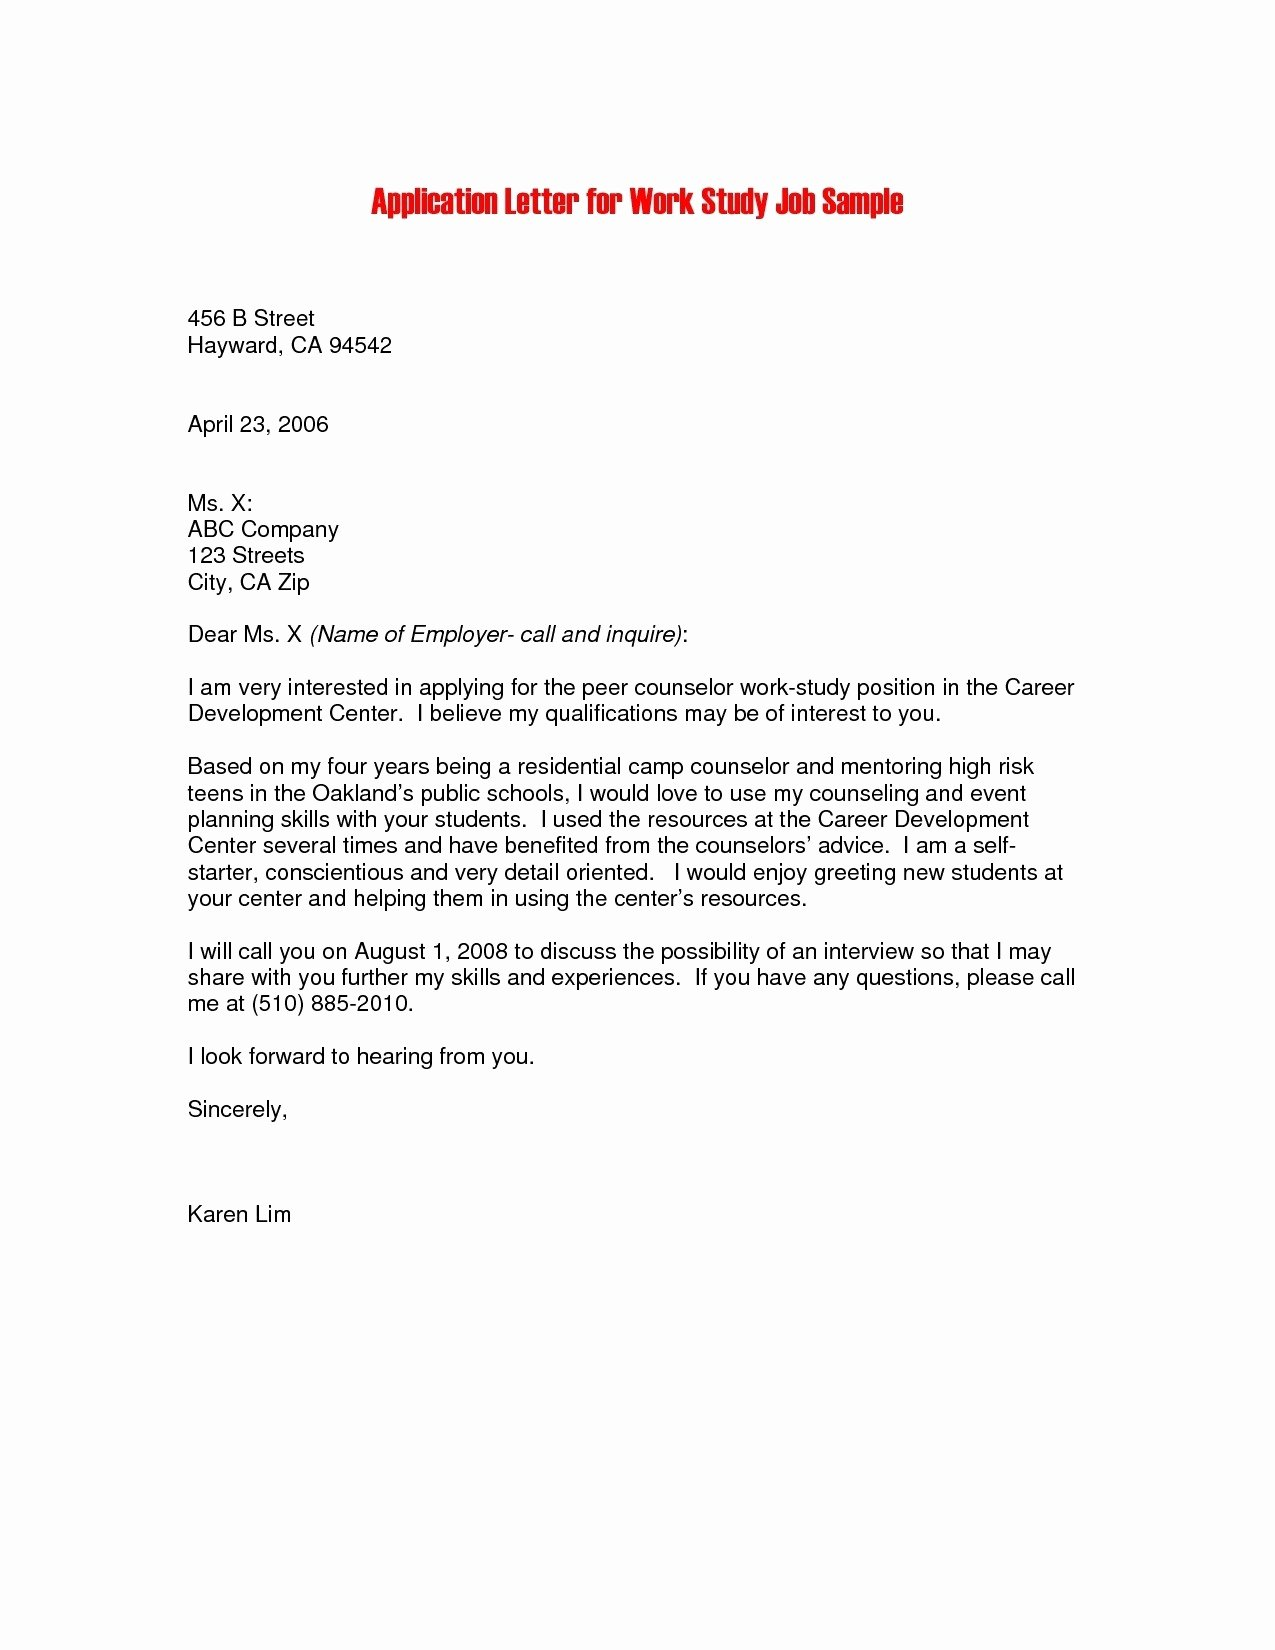 Job Application Letter format Pdf Unique Job Application Sample Pdf